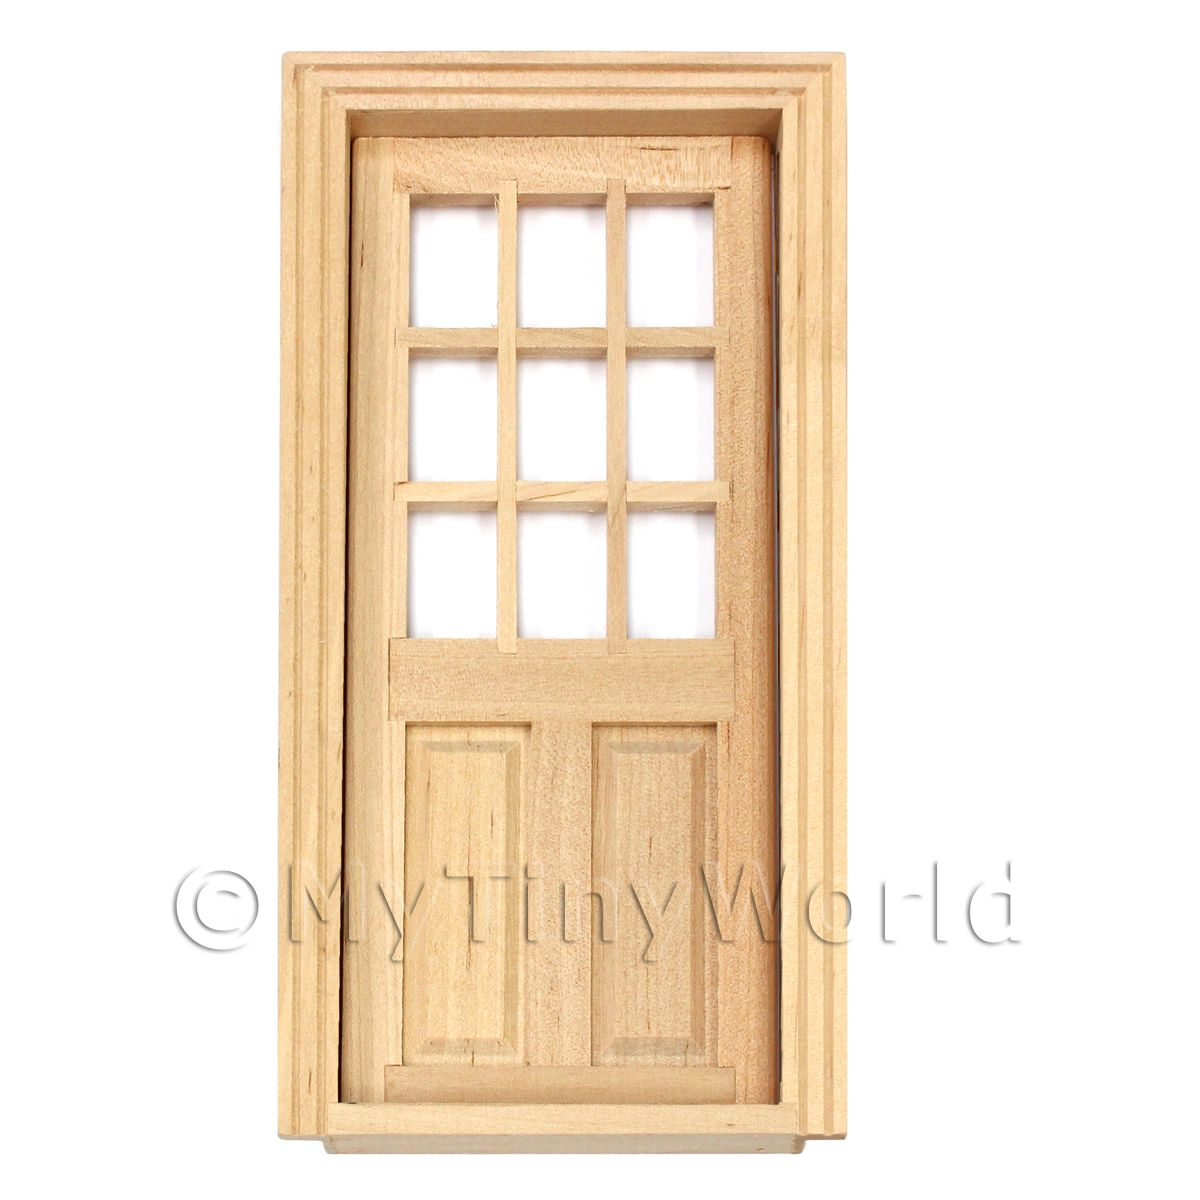 Dolls House Miniature 9 Panel Glazed Wood Door